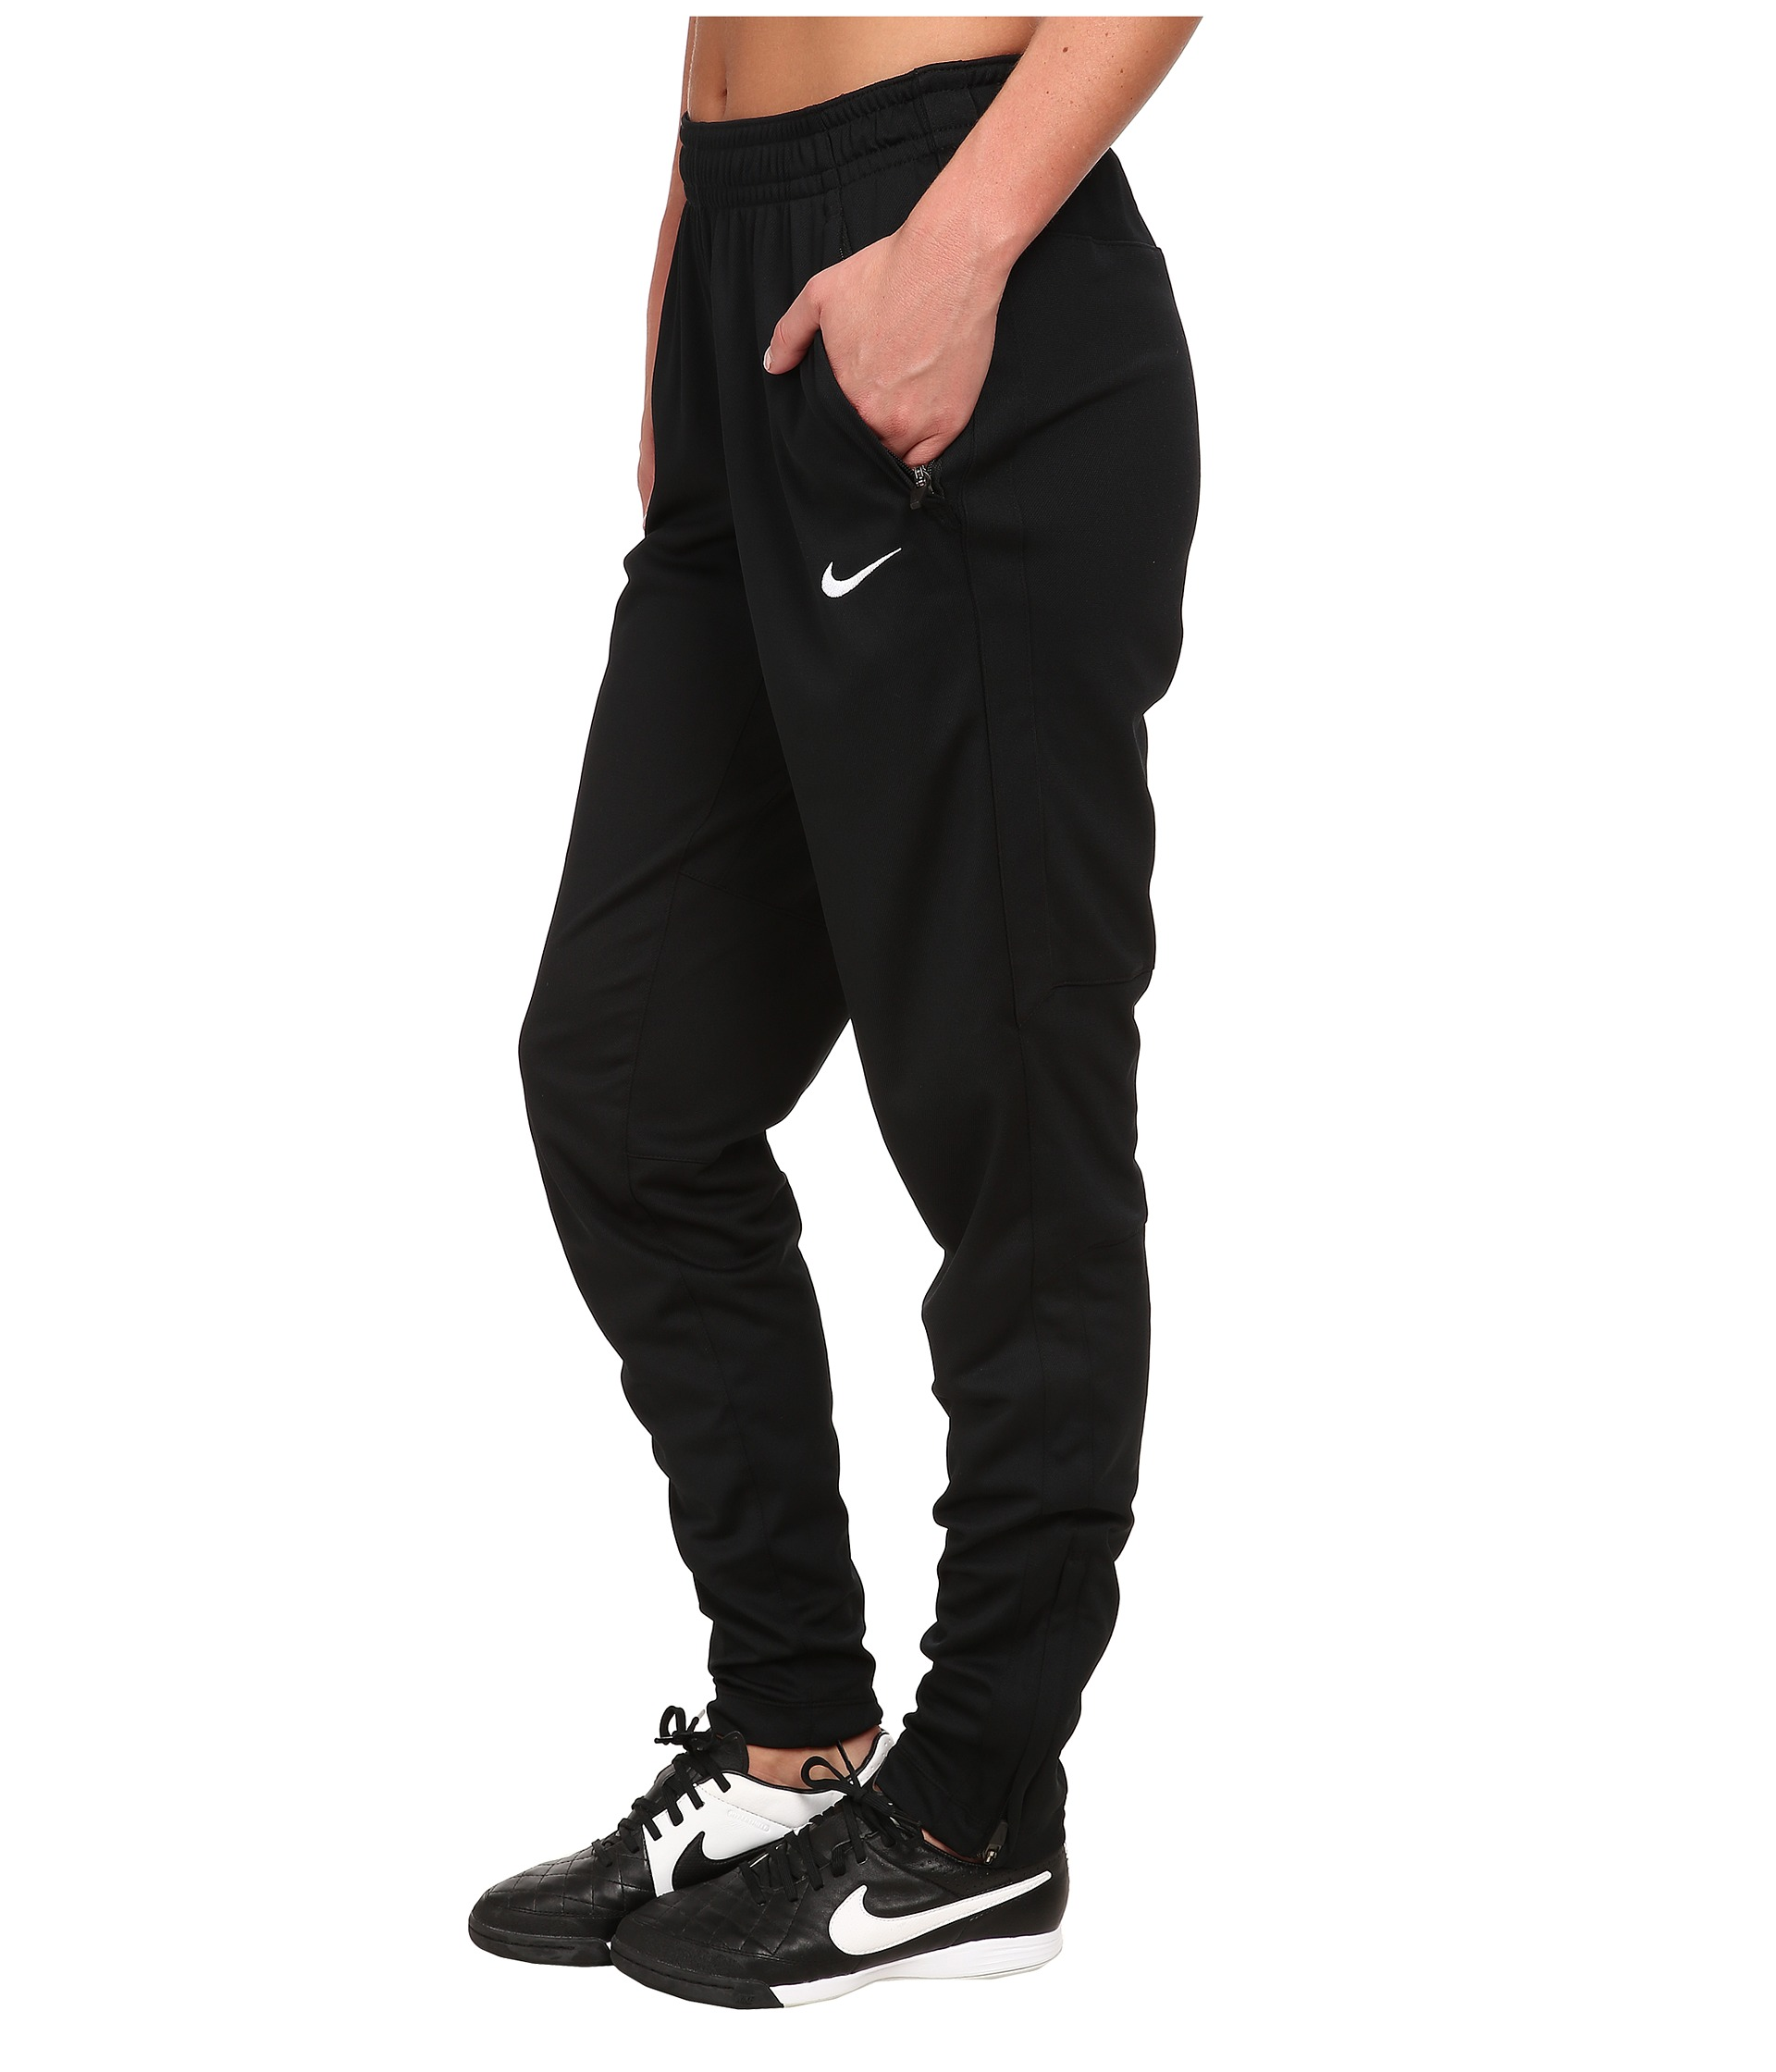 Nike Academy Knit Womens Soccer Pants With Fantastic Innovation ... a212b29232